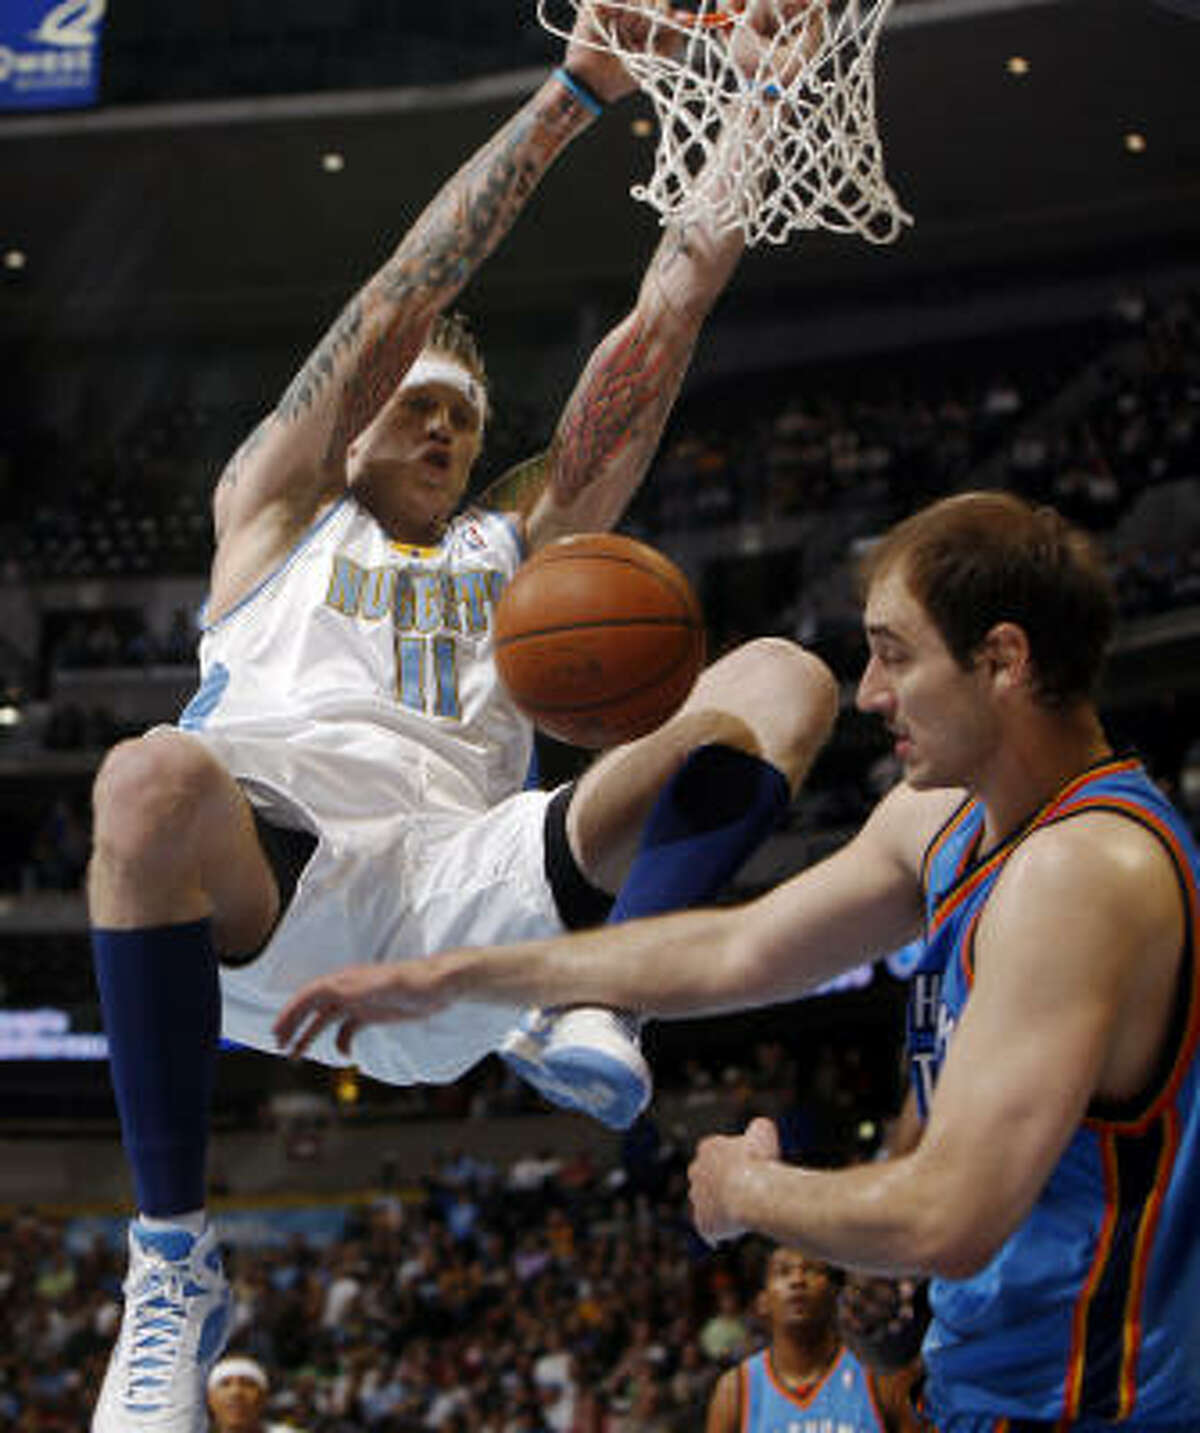 2. Denver Nuggets (53-27) The Nuggets hold a one-game lead over the Houston Rockets and their Northwest Division rivals, the Portland Trail Blazers, with two games left.